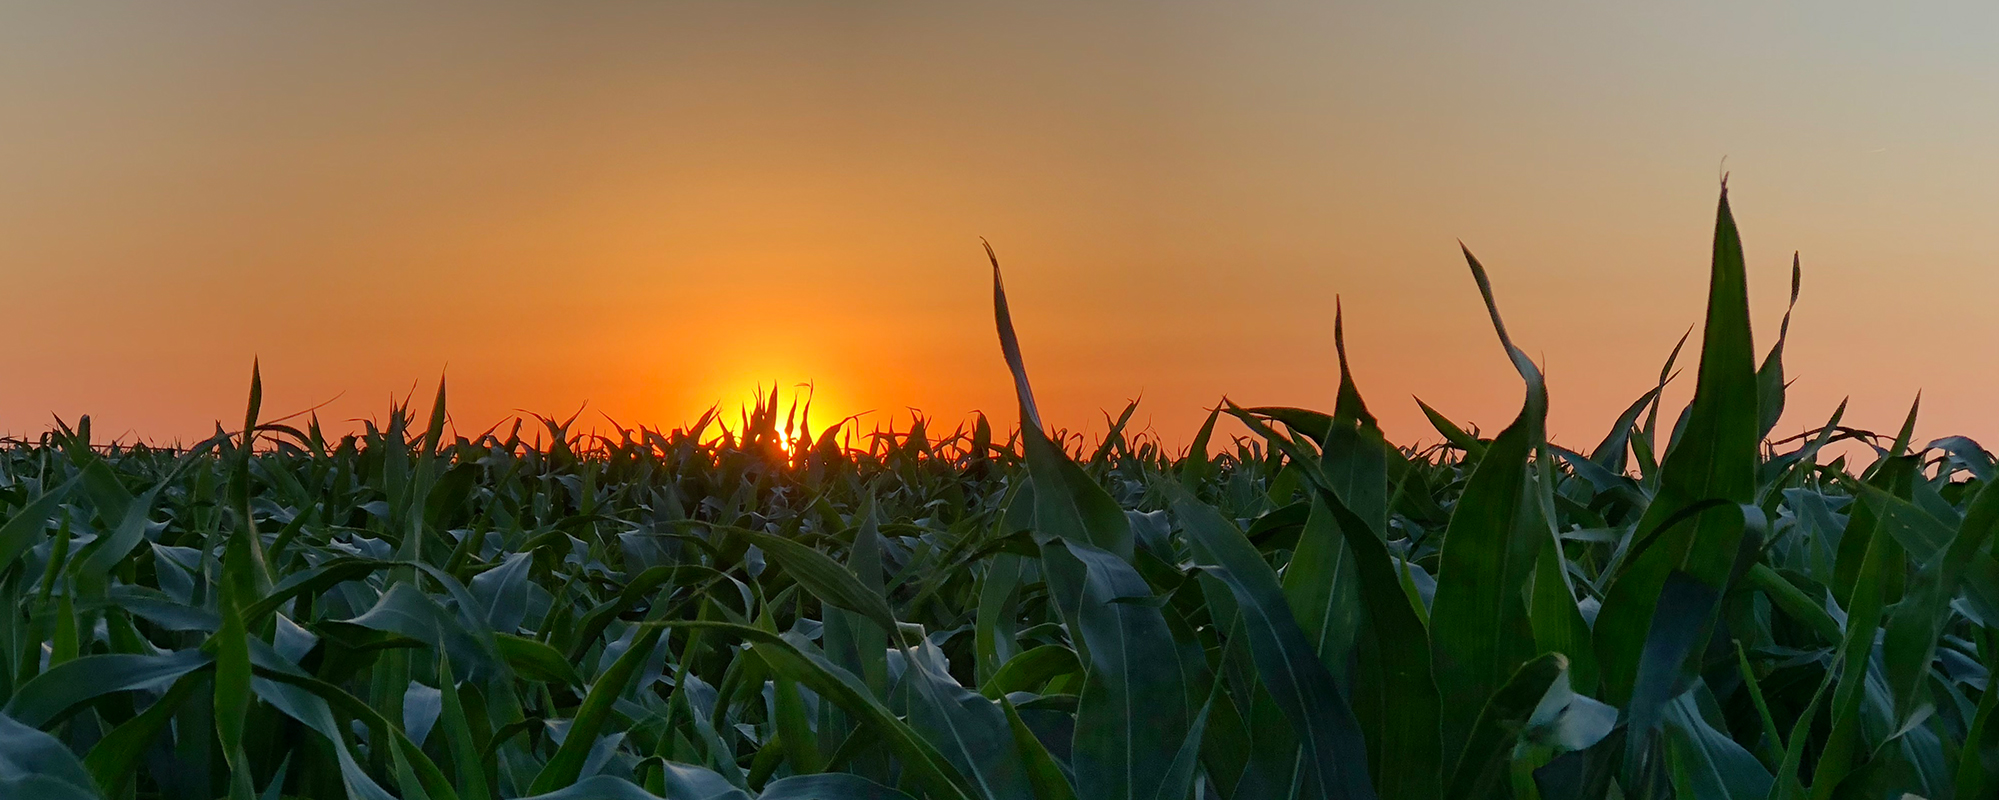 sunset on corn